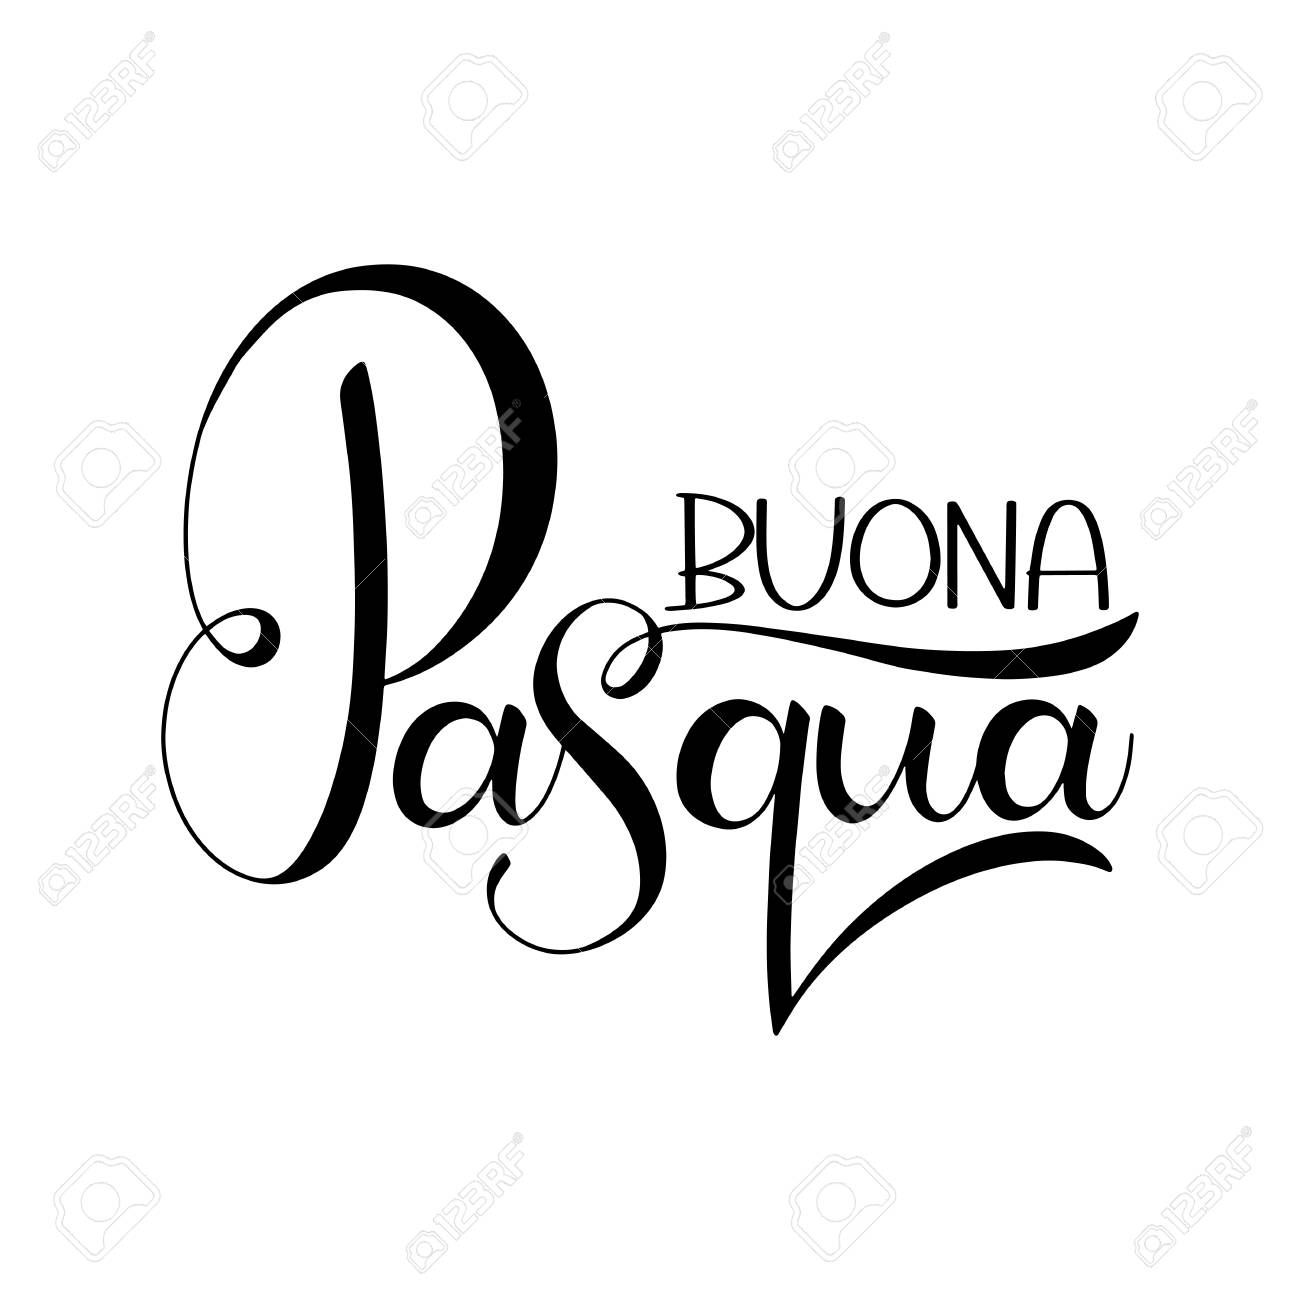 Buona pasqua lettering happy easter colorful lettering in italian buona pasqua lettering happy easter colorful lettering in italian hand written easter phrases m4hsunfo